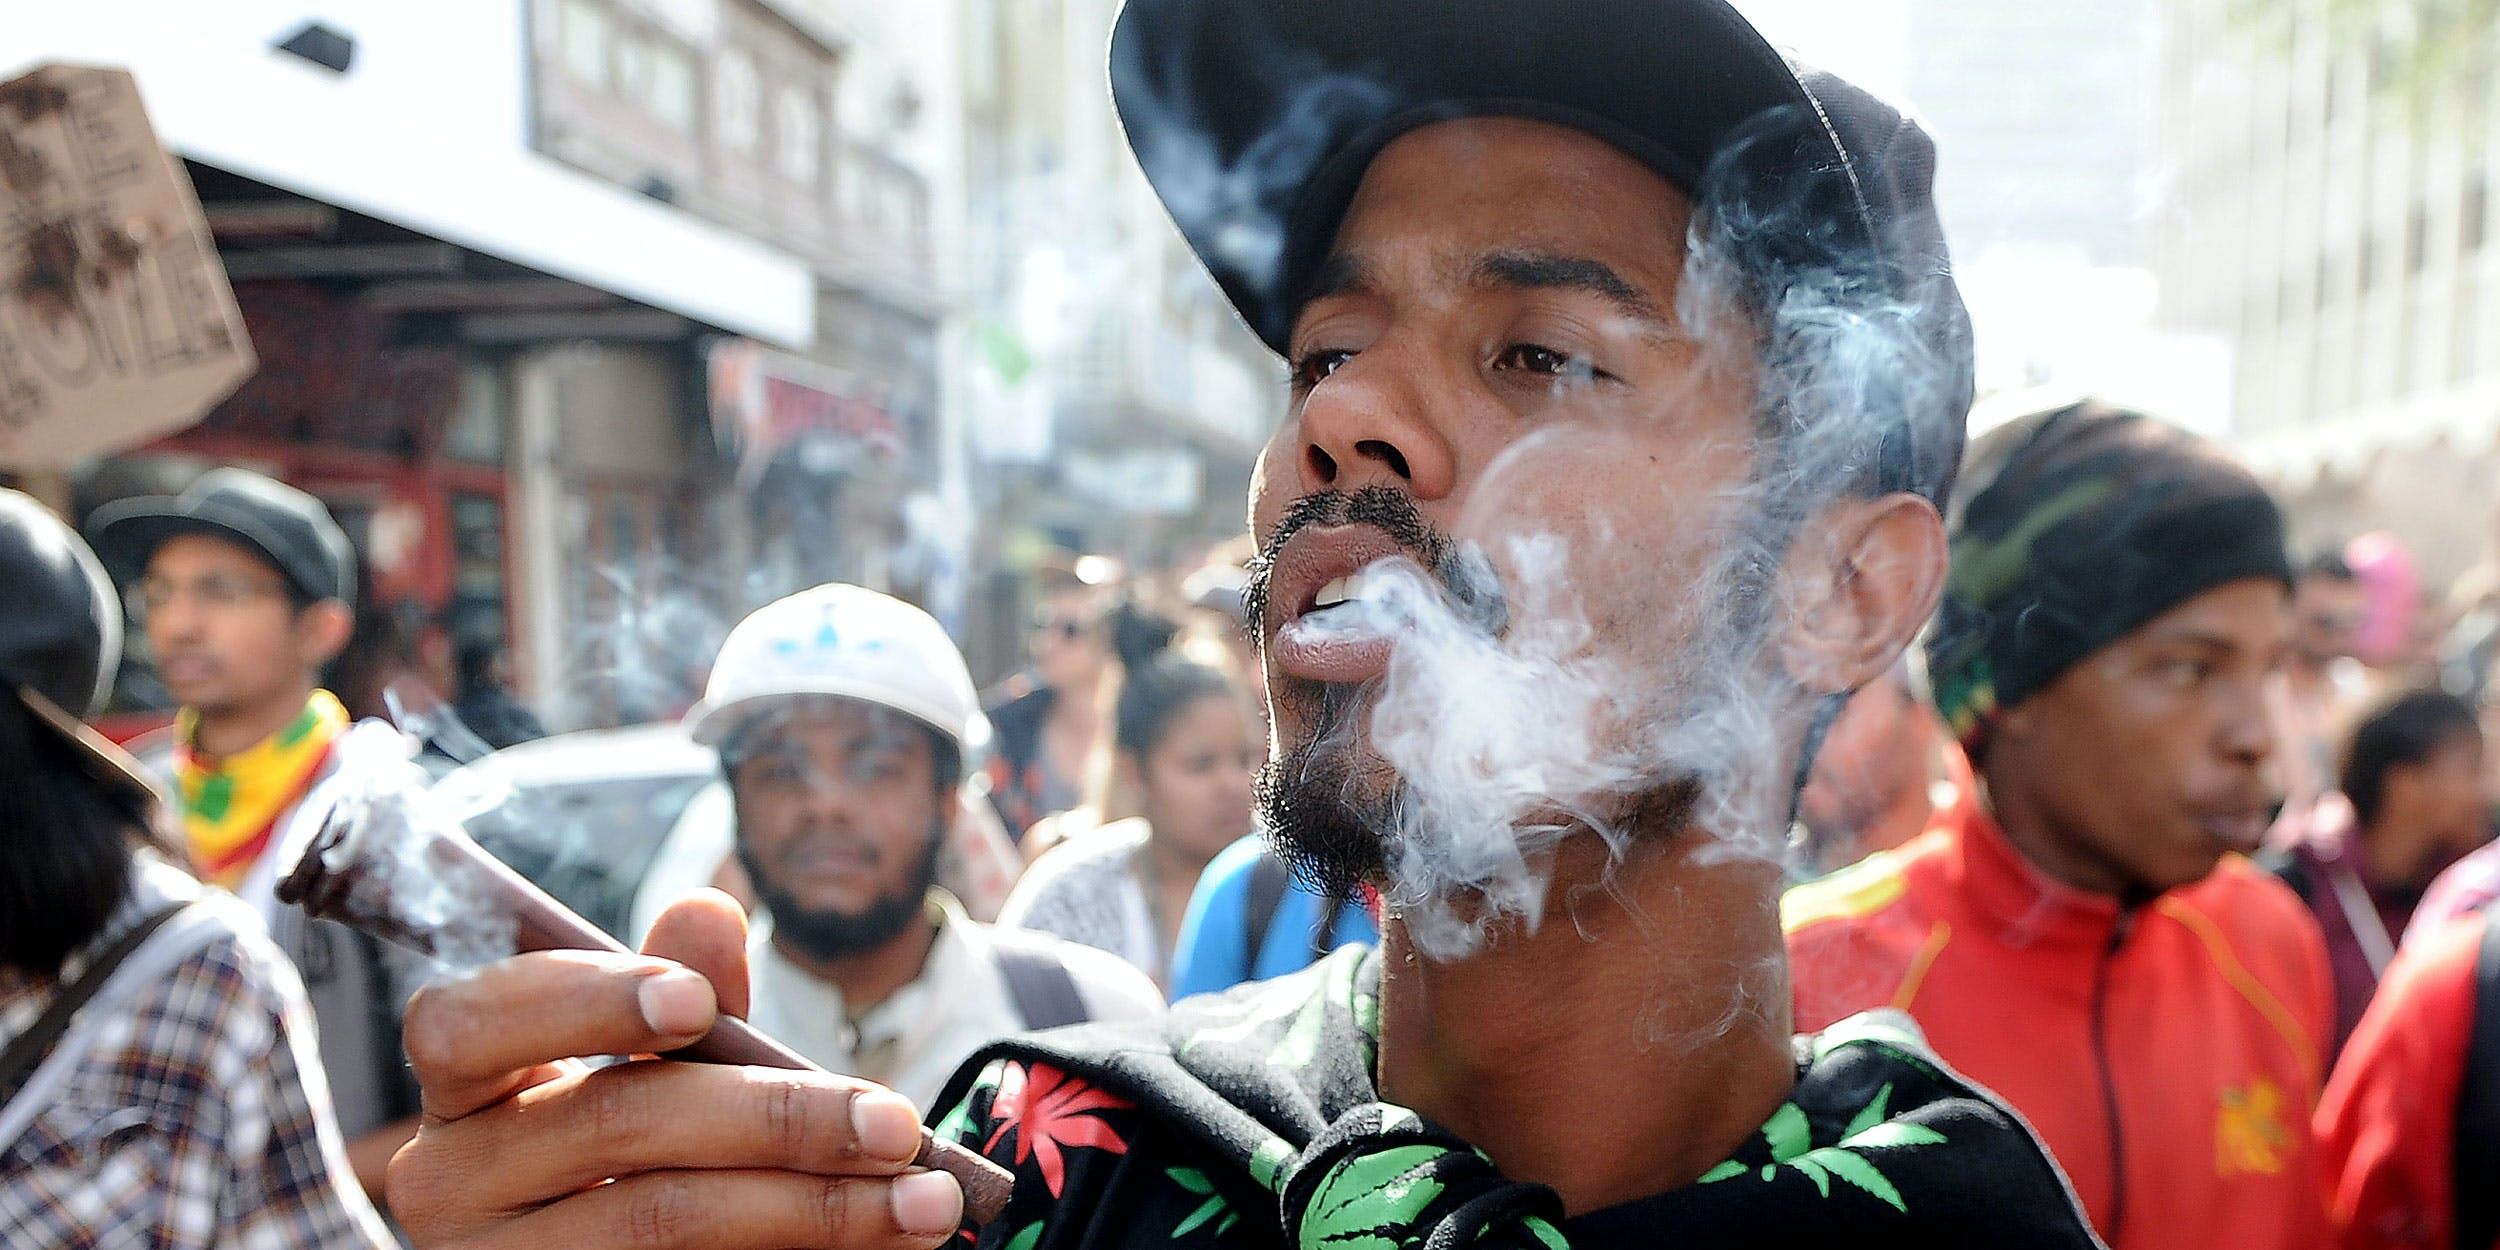 a man smokes marijuana during a marijuana march. Africa's first medical marijuana dispensary is about to open in South Africa.